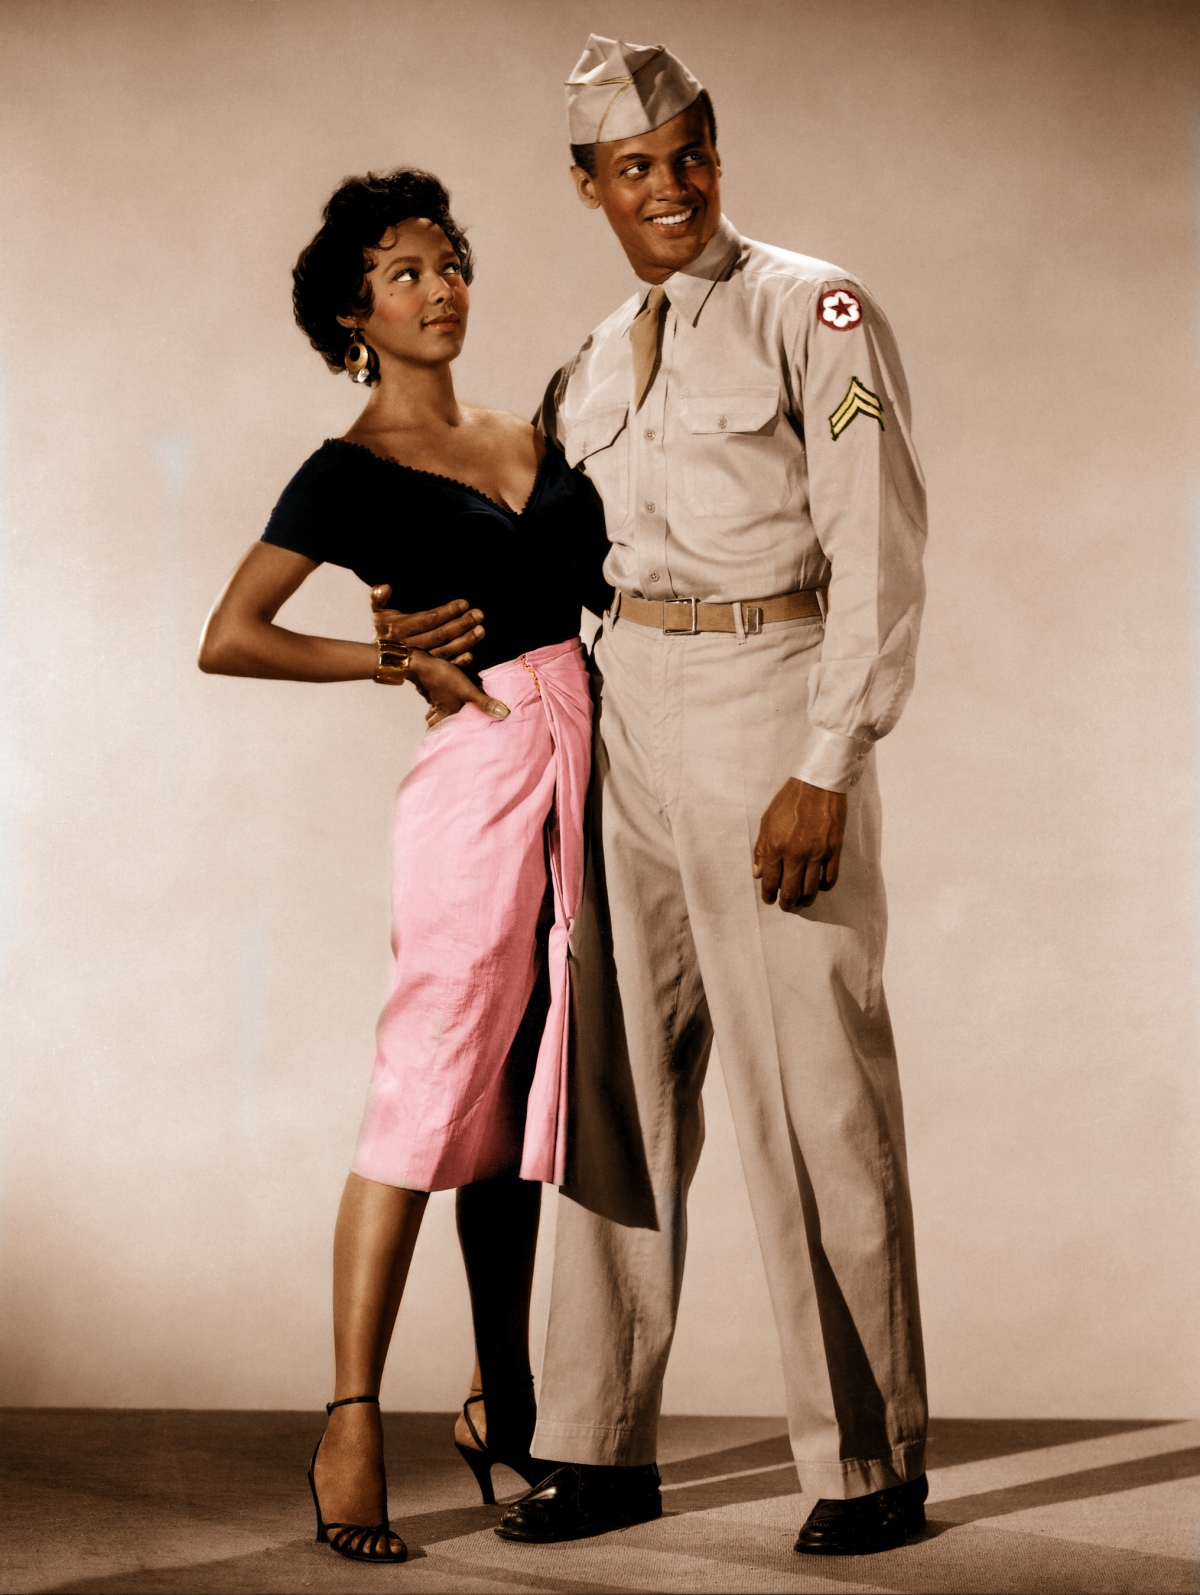 http://olivierpere.files.wordpress.com/2012/08/dorothy-dandridge-et-harry-belafonte-posant-pour-carmen-jones.jpg?w=1200